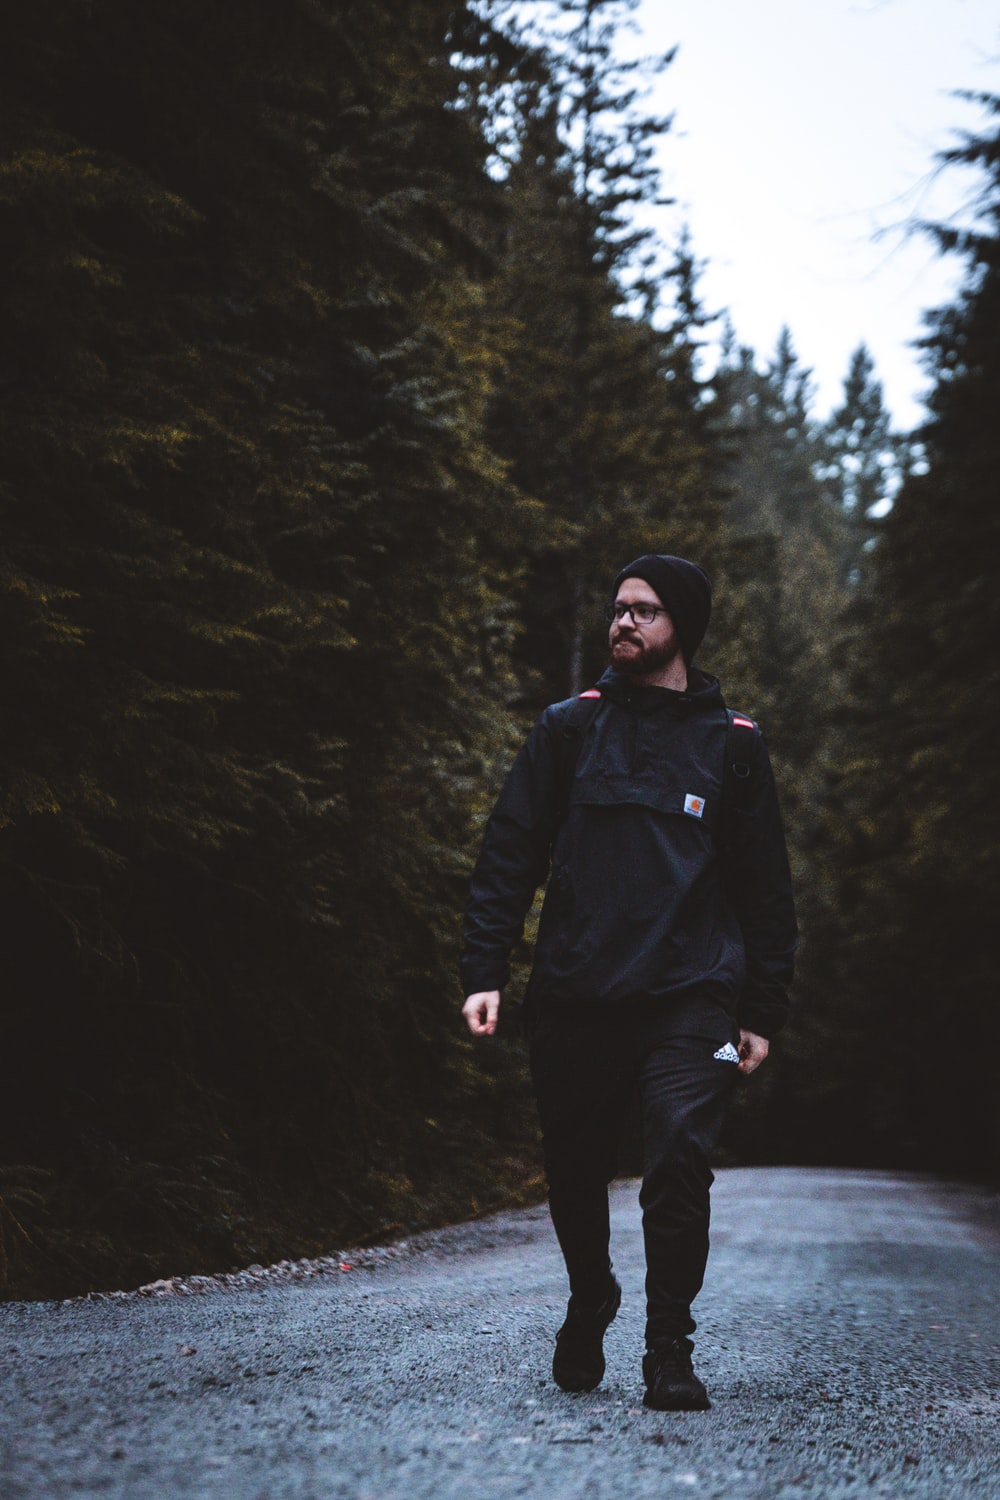 man in black jacket and black pants standing on road between trees during daytime